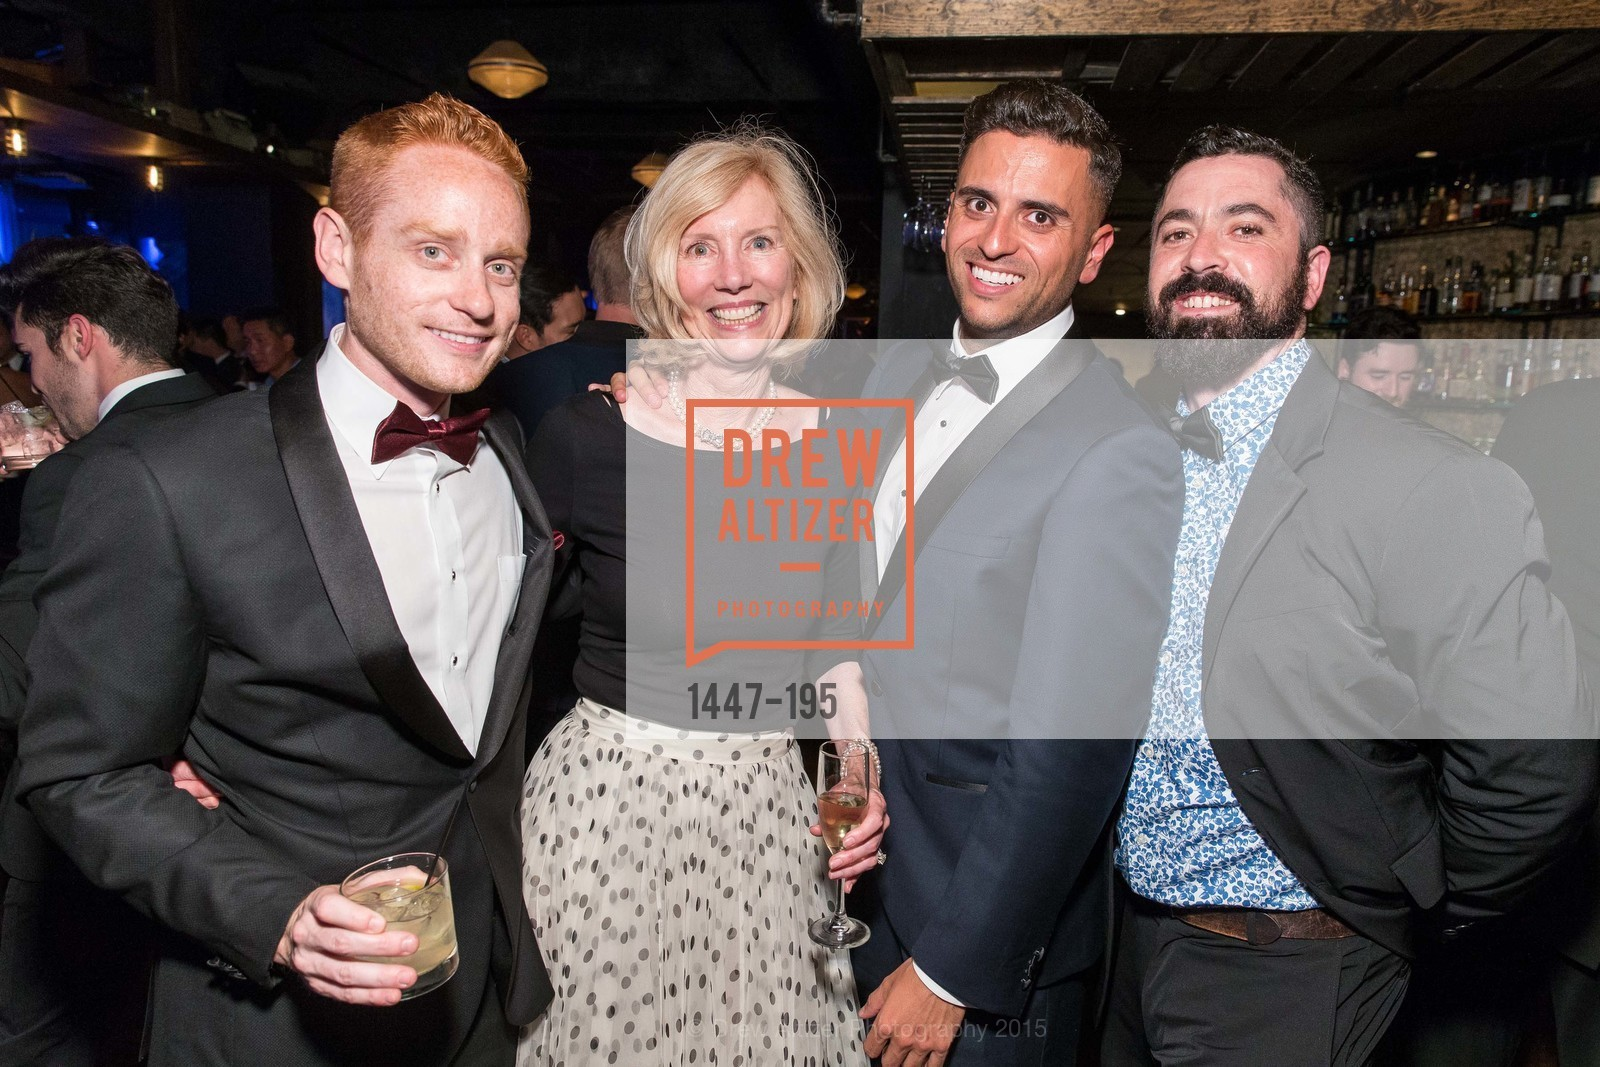 Harrison Malone, Gail Stark, Matt Wathen, Gianni Lyle, Climb Real Estate and Sindeo Celebrate the Launch of Million Dollar Listing San Francisco, Local Edition San Francisco. 691 Market St, July 8th, 2015,Drew Altizer, Drew Altizer Photography, full-service agency, private events, San Francisco photographer, photographer california